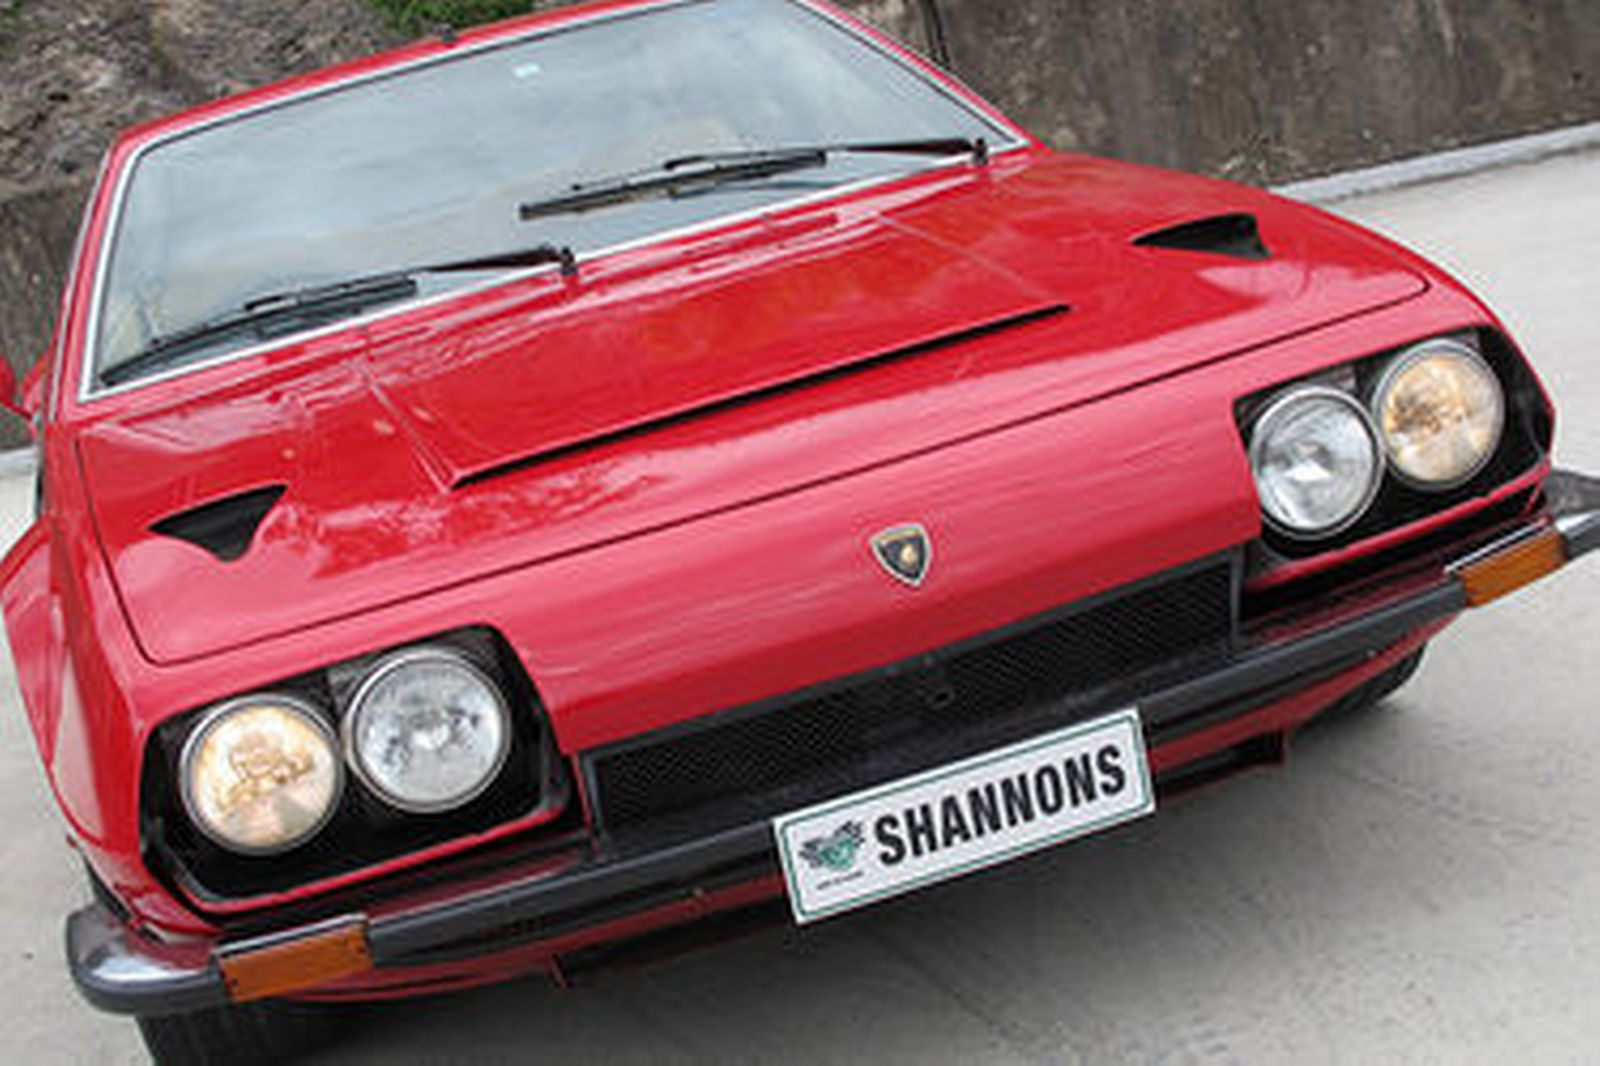 Lamborghini Jarama GTS Coupe Auctions - Lot 21 - Shannons